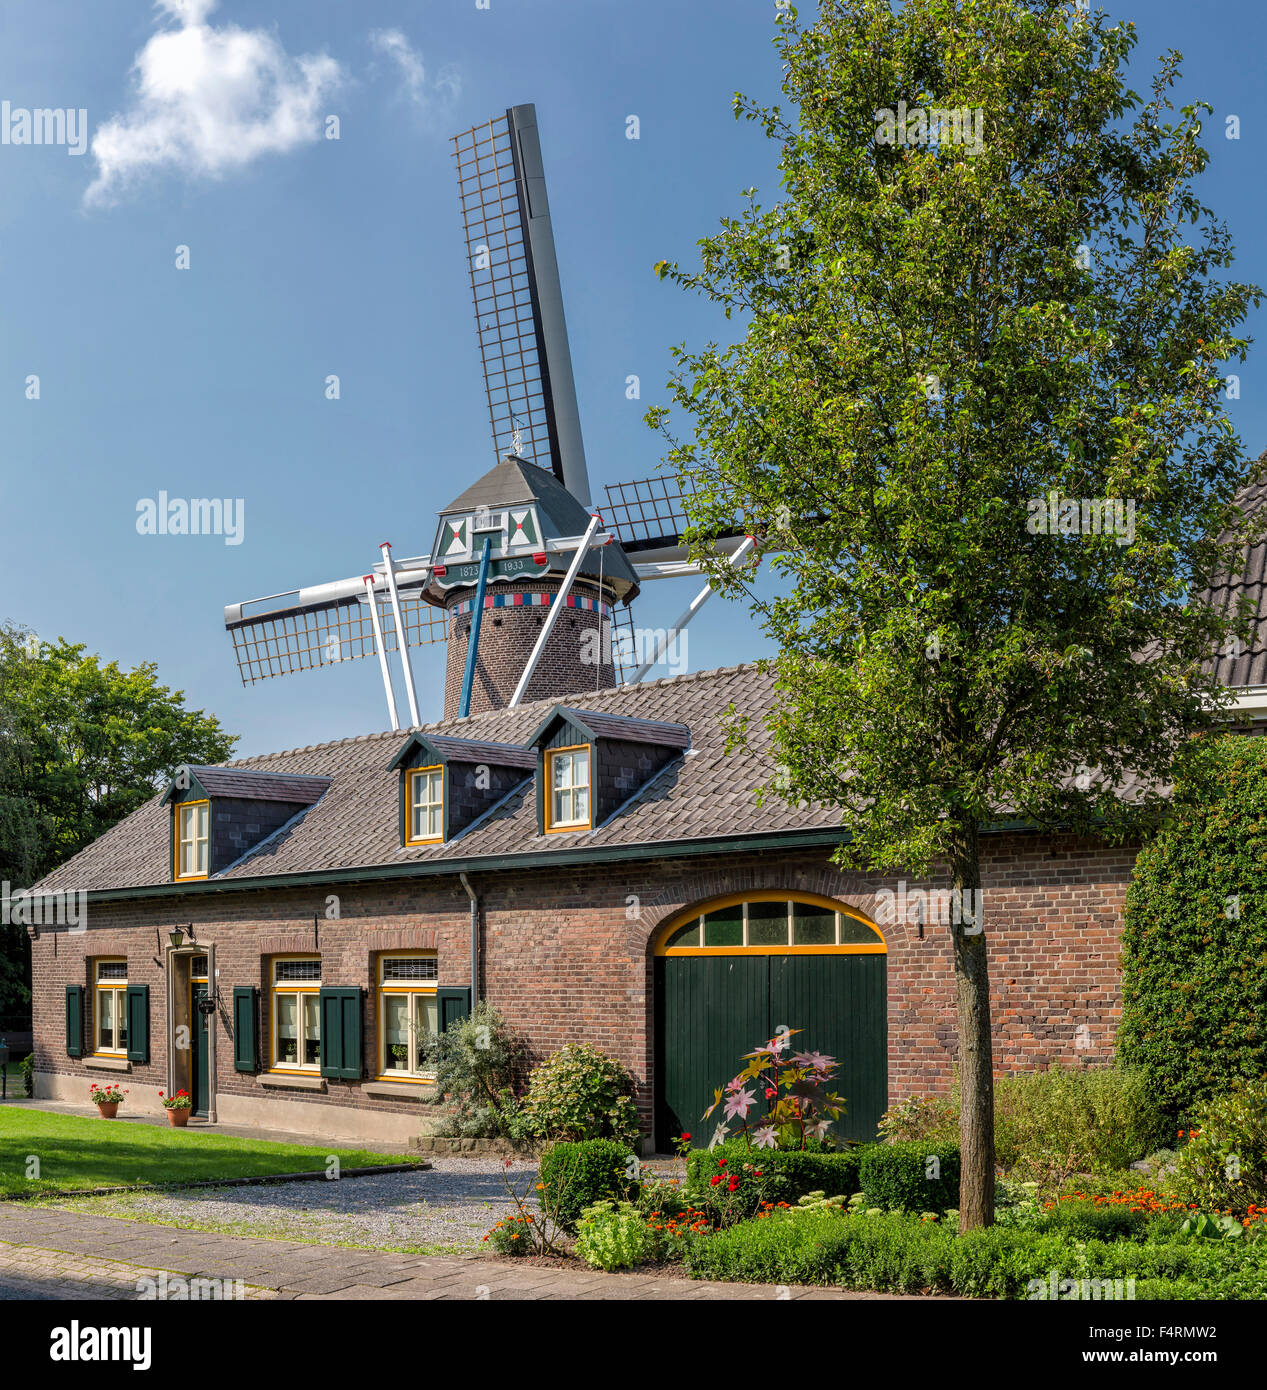 Netherlands, Europe, Holland, Horn, Limburg, windmill, city, village, summer, Prosperity - Stock Image